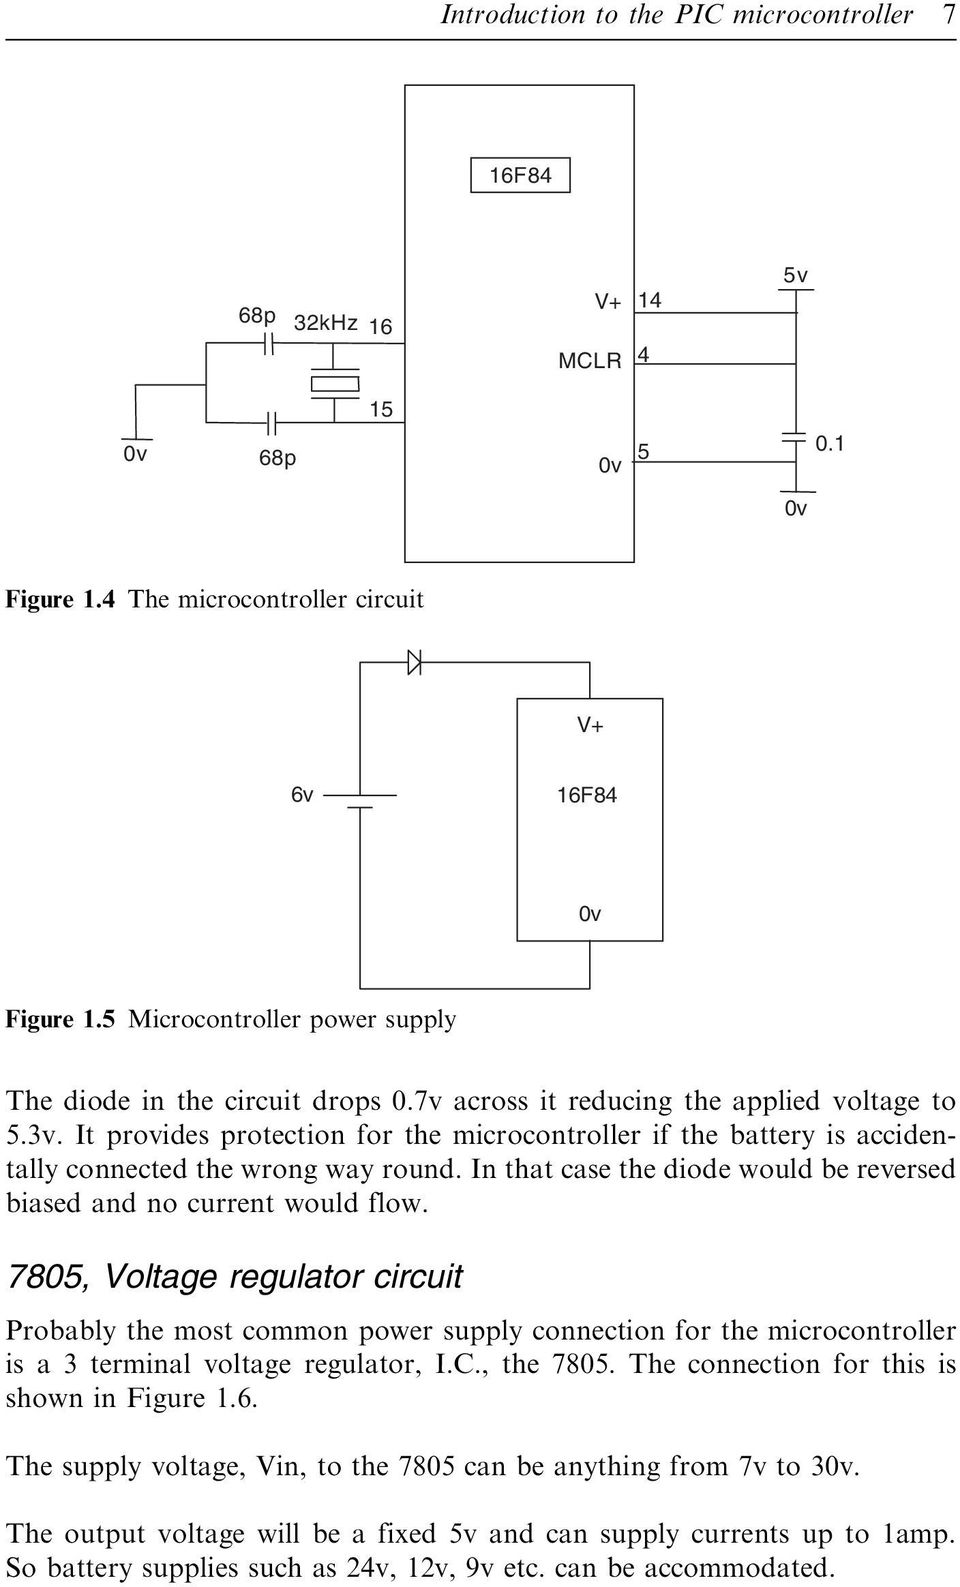 Pic In Practice A Project Based Approach D W Smith Pdf 7805voltageregulator Lm7805 Voltage Regulator Circuit It Provides Protection For The Microcontroller If Battery Is Accidentally Connected Wrong Way Round